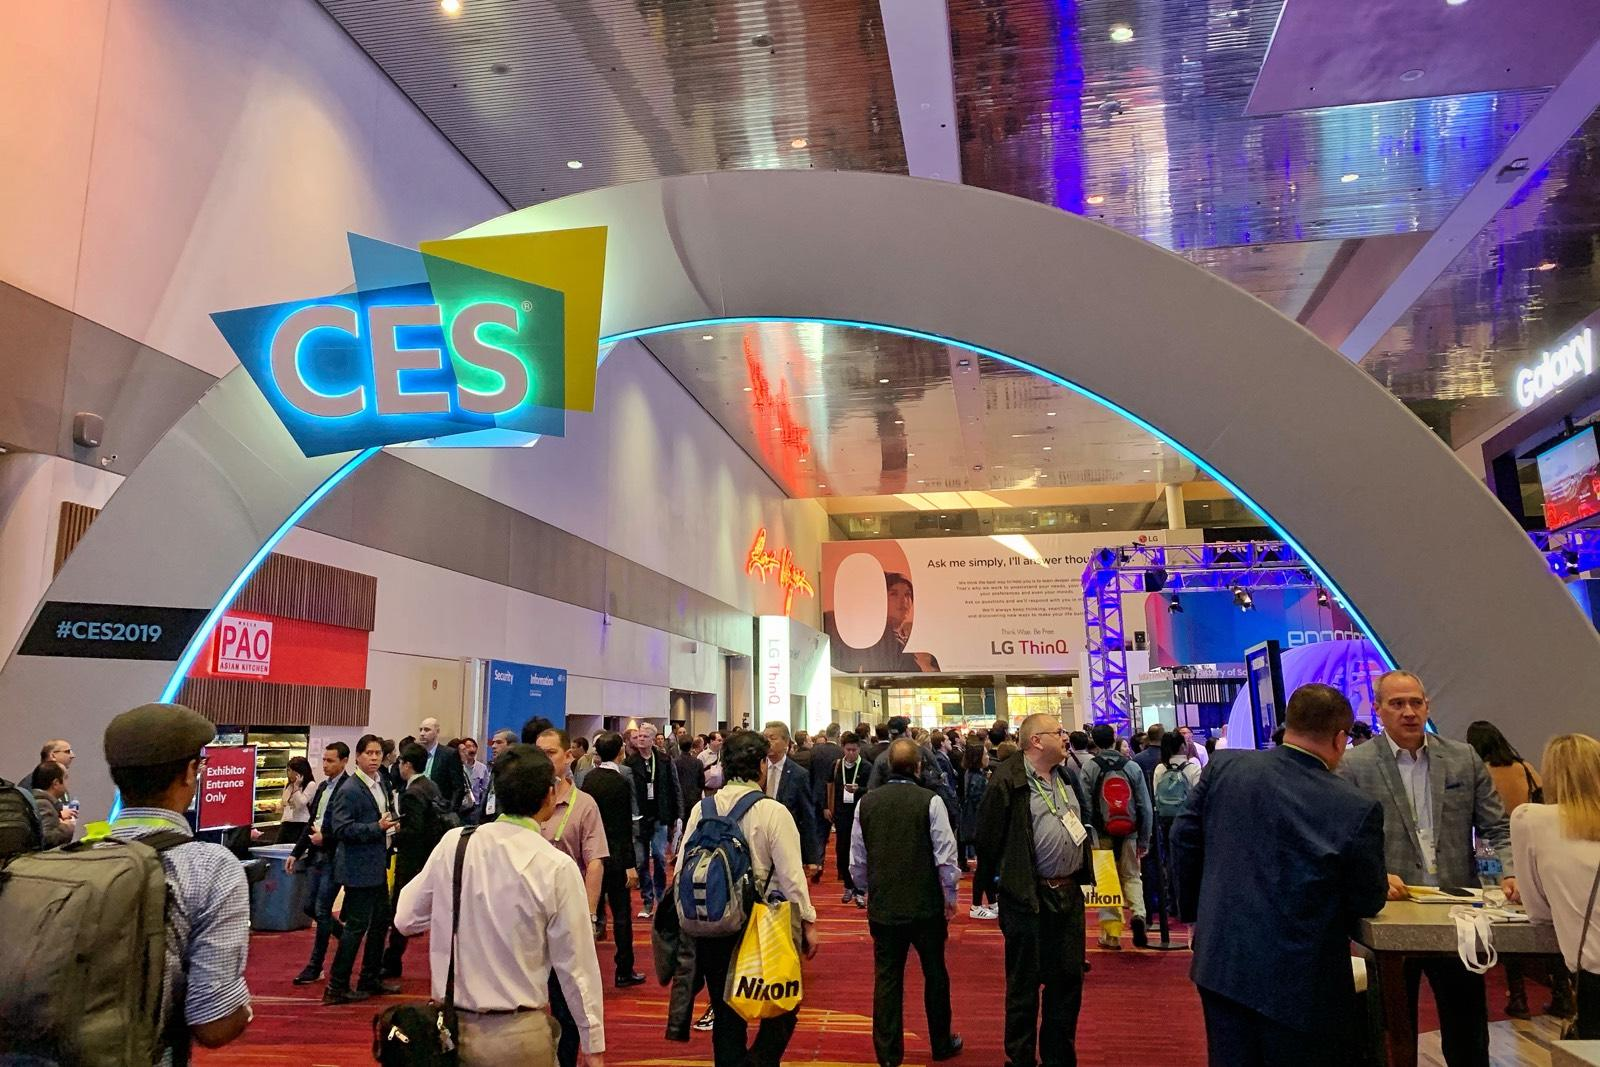 CES welcome arch